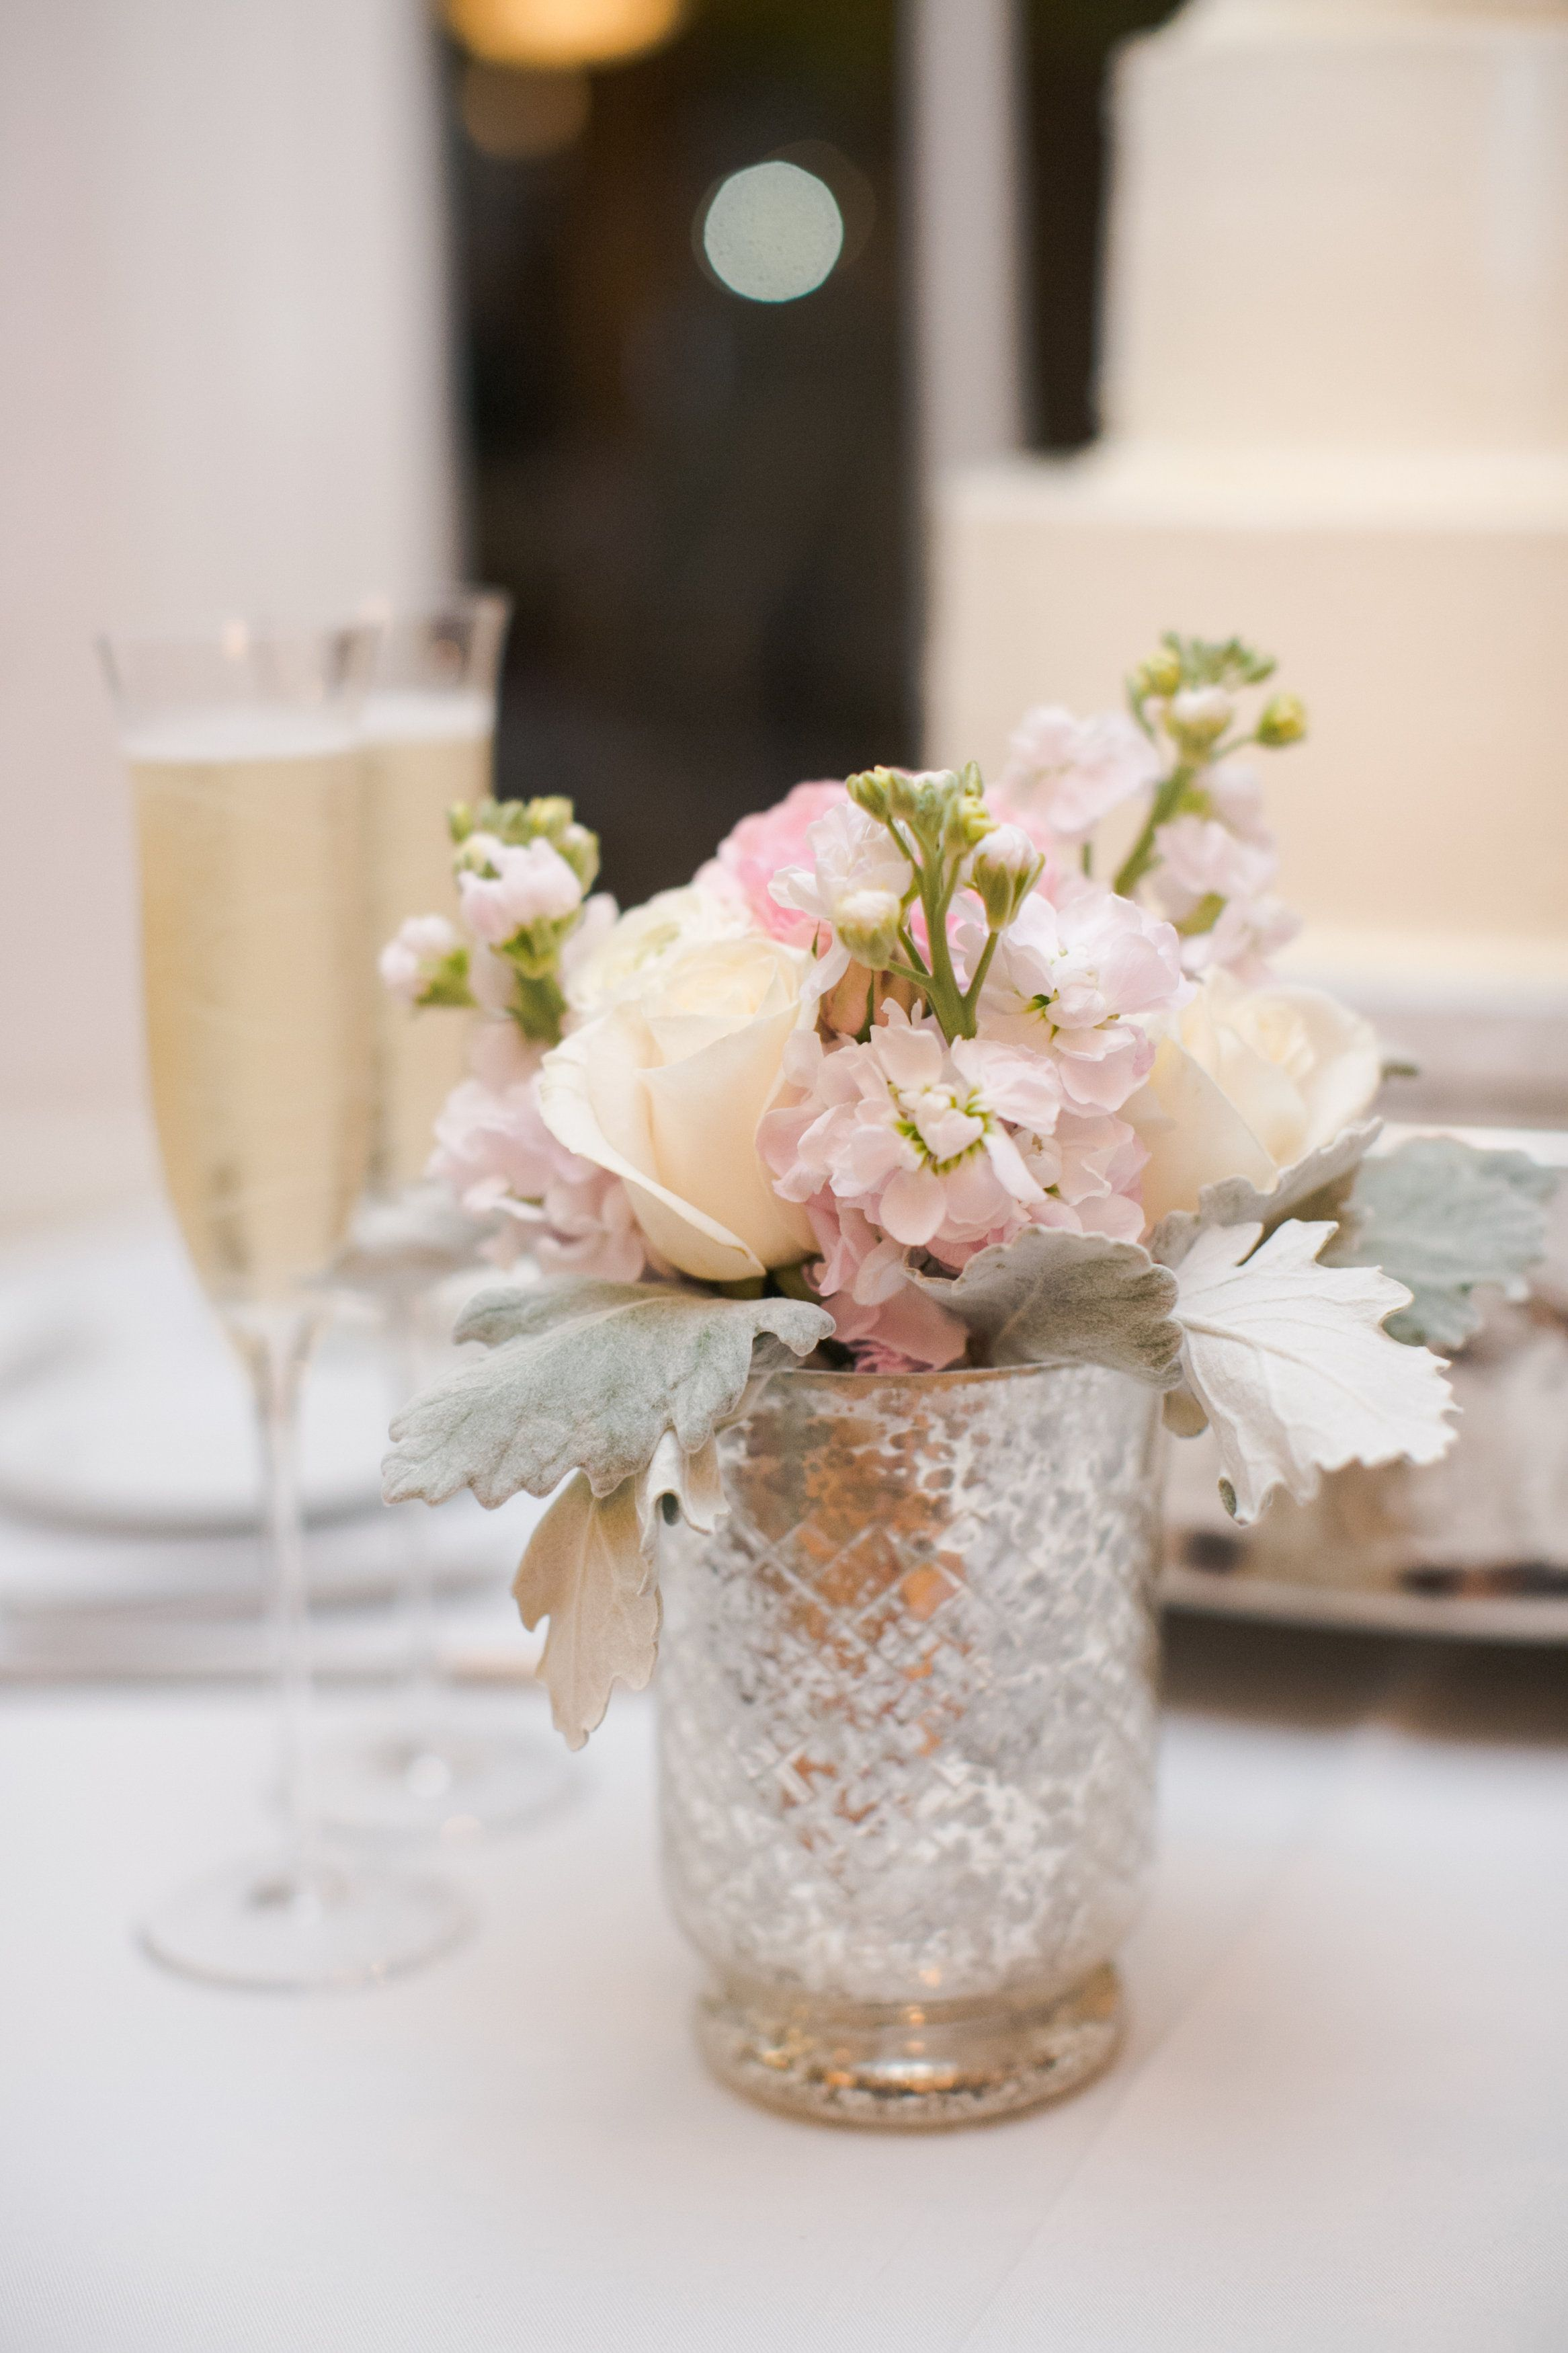 Wedding Flowers Flower Table Centerpiece Silver Gl Vase Champagne By Verbena Whole Foods Market Caroline Joy Photography Premiere